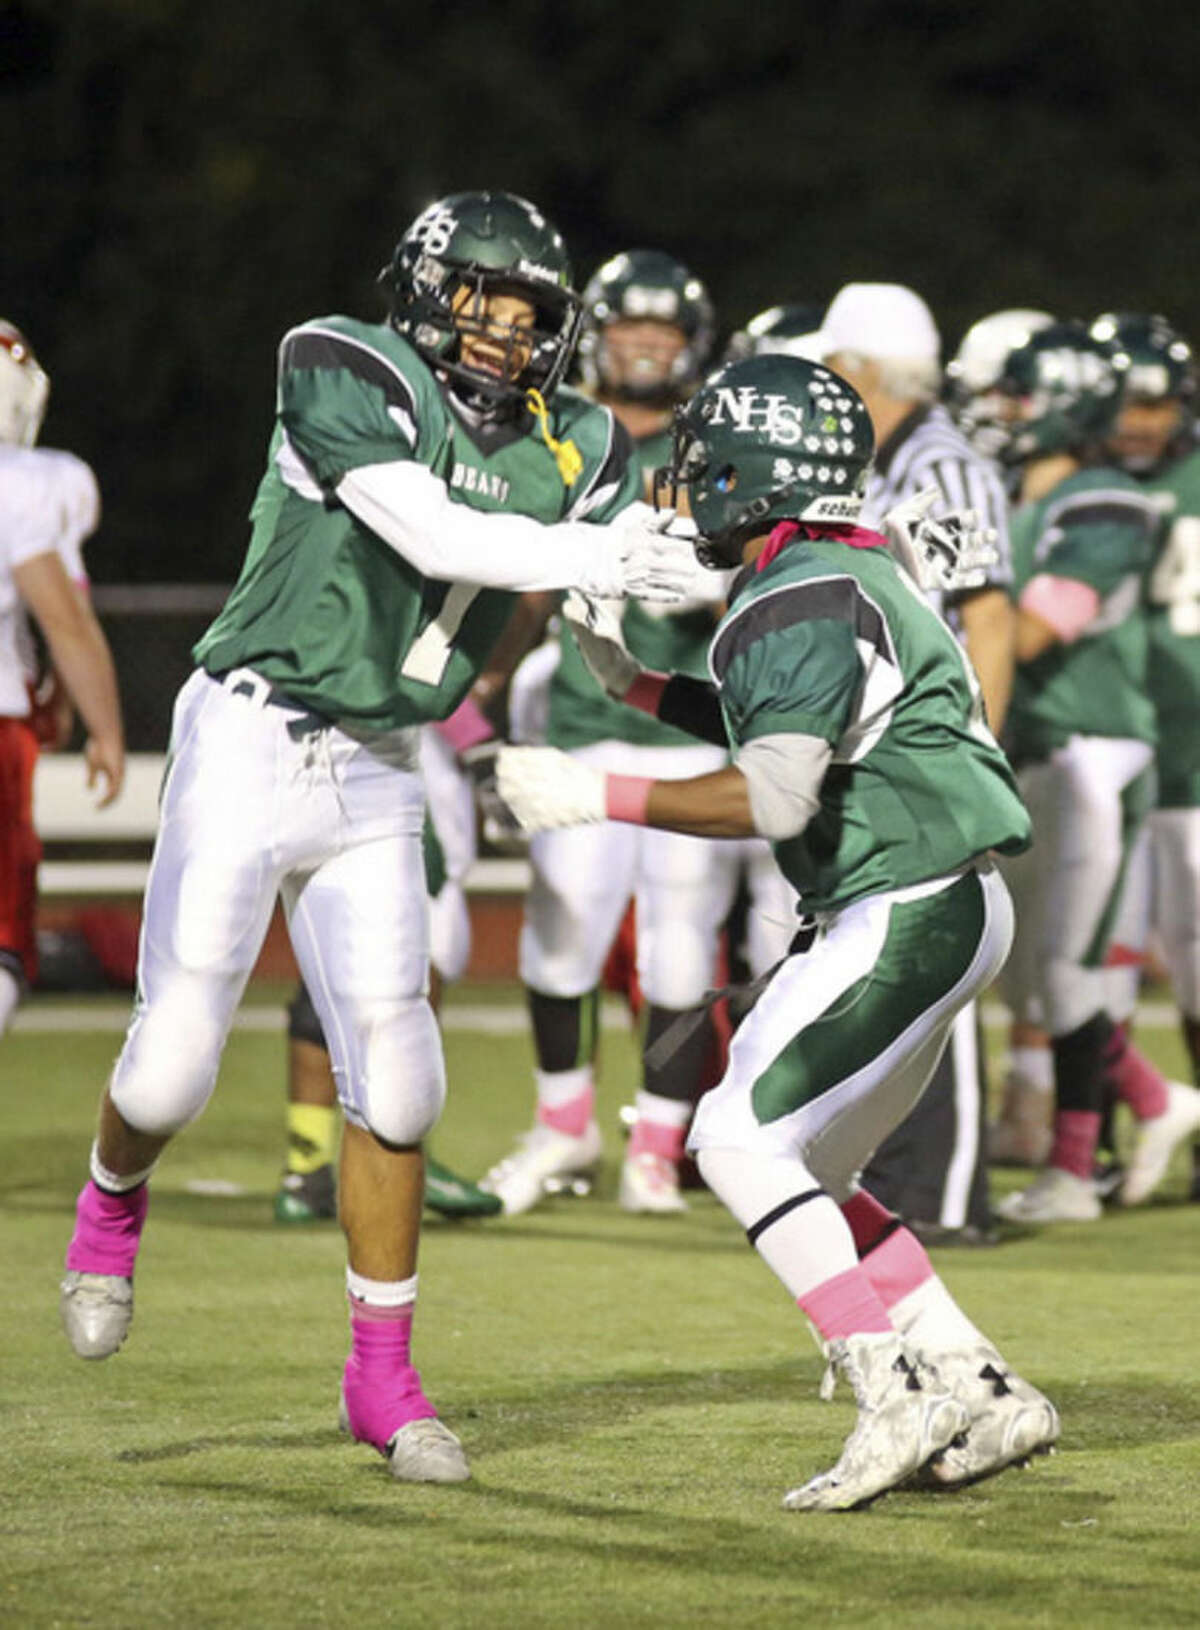 Hour Photo / Danielle Calloway Norwalk's Brendan Brown congratulates a teammate after a play during Friday night's game against Greenwich.